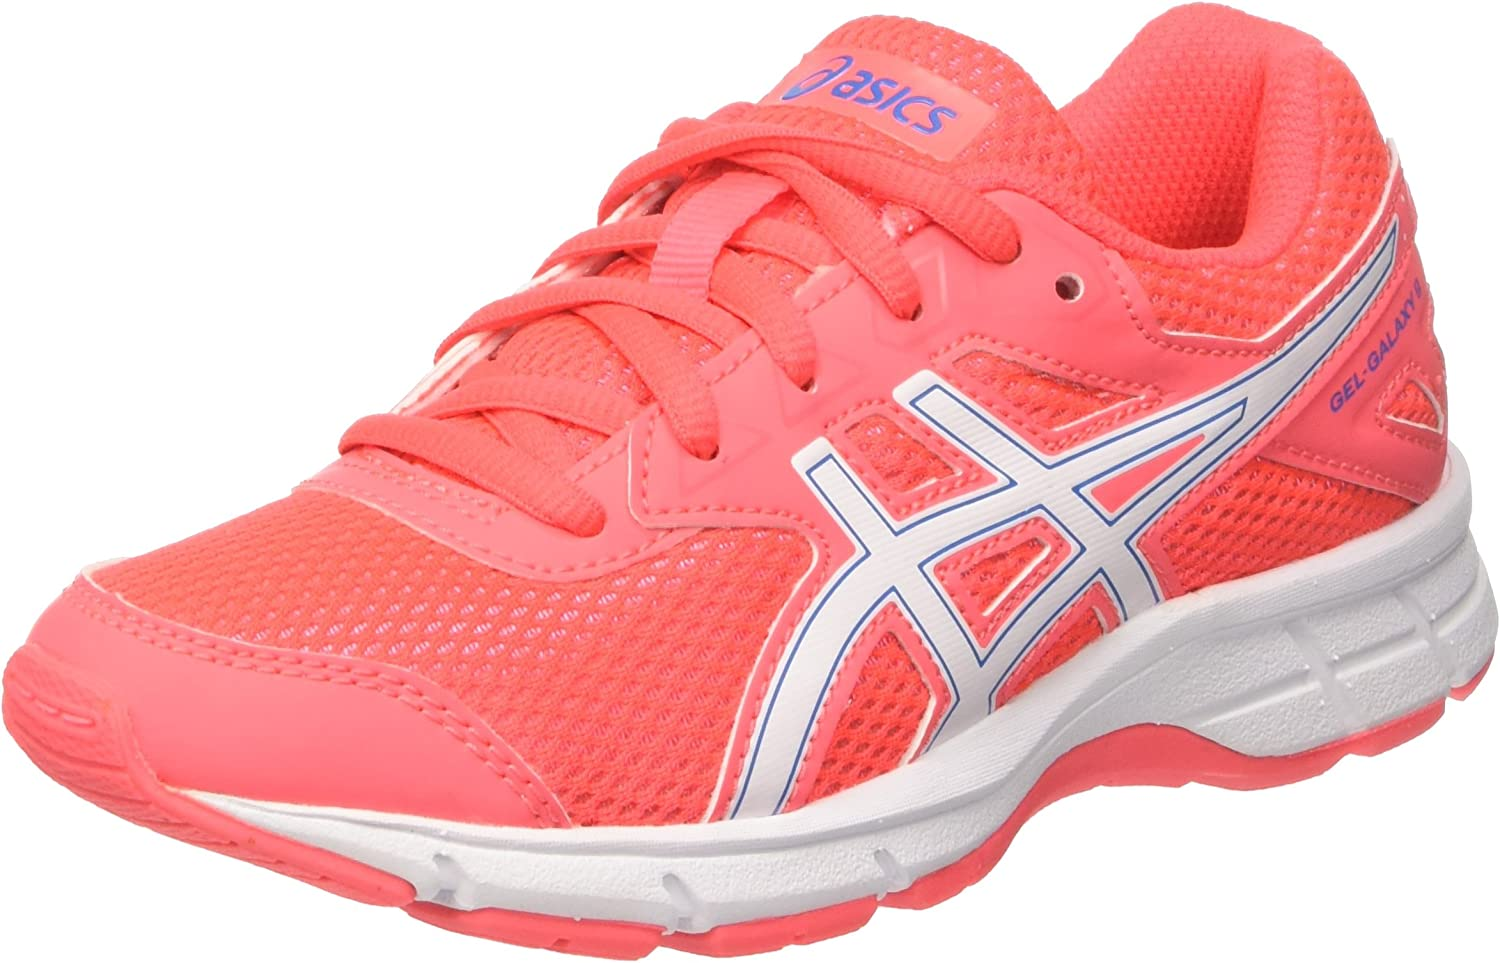 Asics Gel-Galaxy 9 GS, Zapatillas de Running para Niñas, (Diva Pink/White/Diva Blue), 37 EU: Amazon.es: Zapatos y complementos